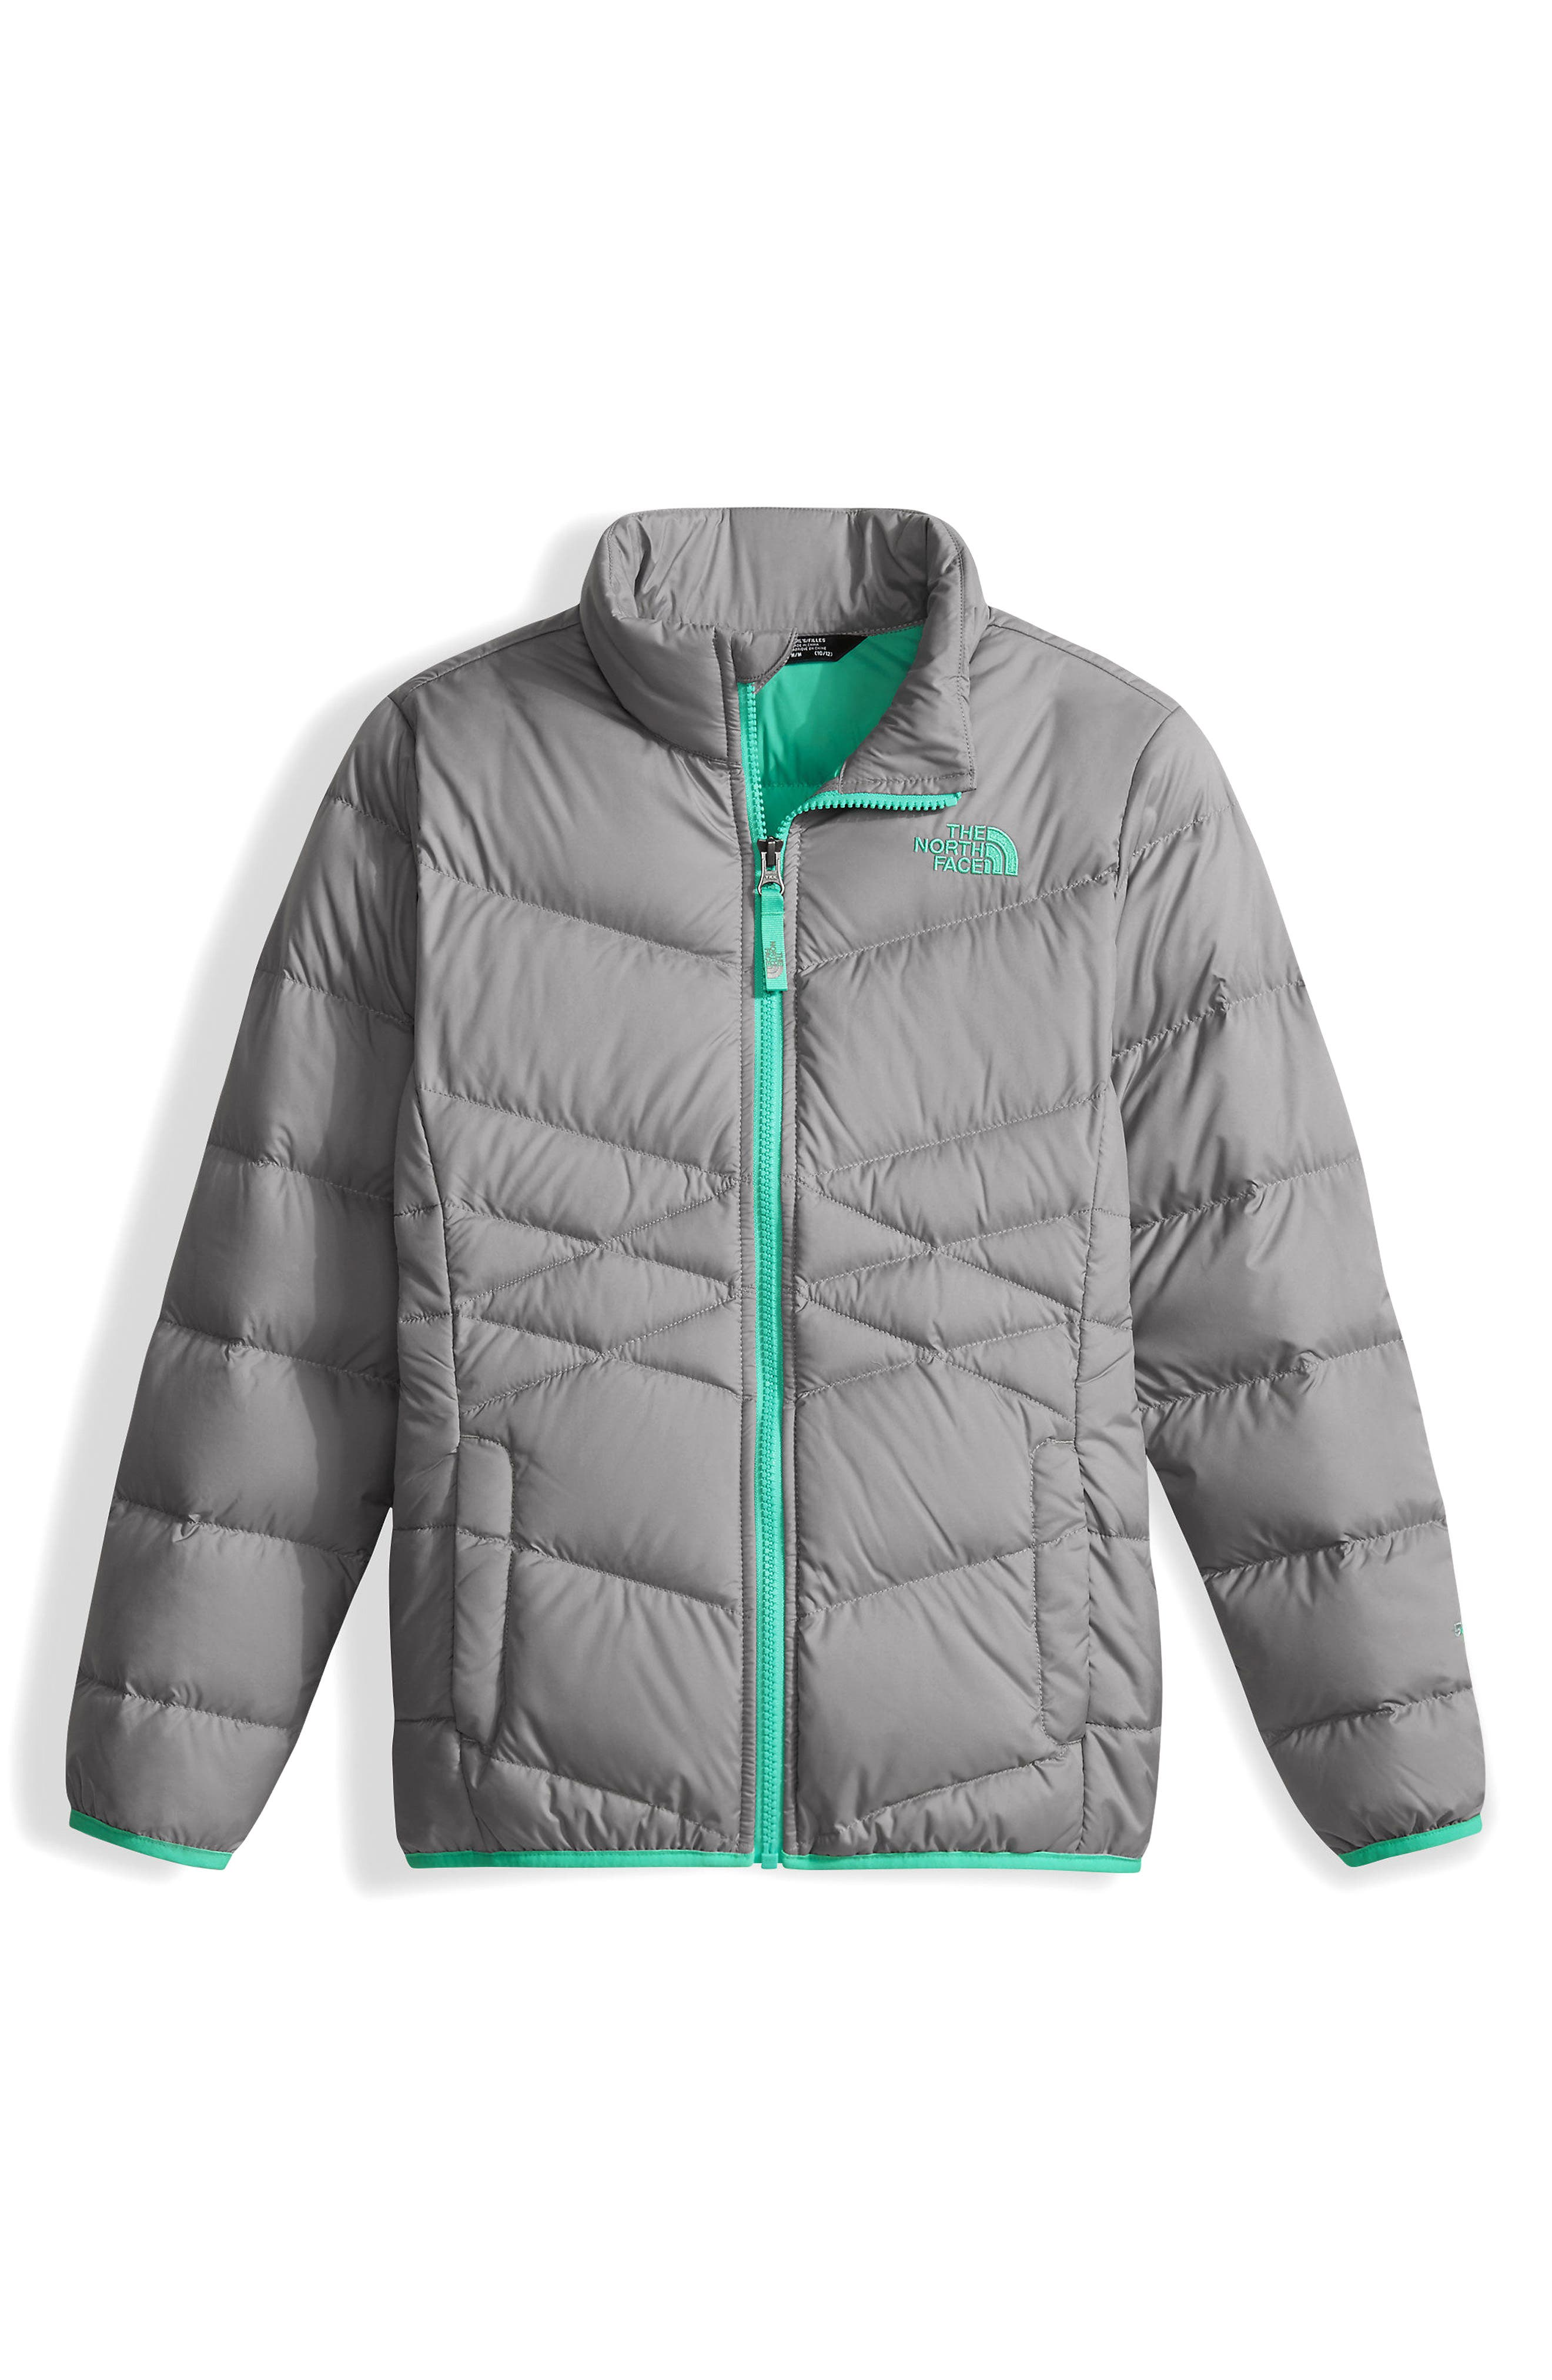 Andes Water Repellent Down Jacket,                         Main,                         color, Metallic Silver